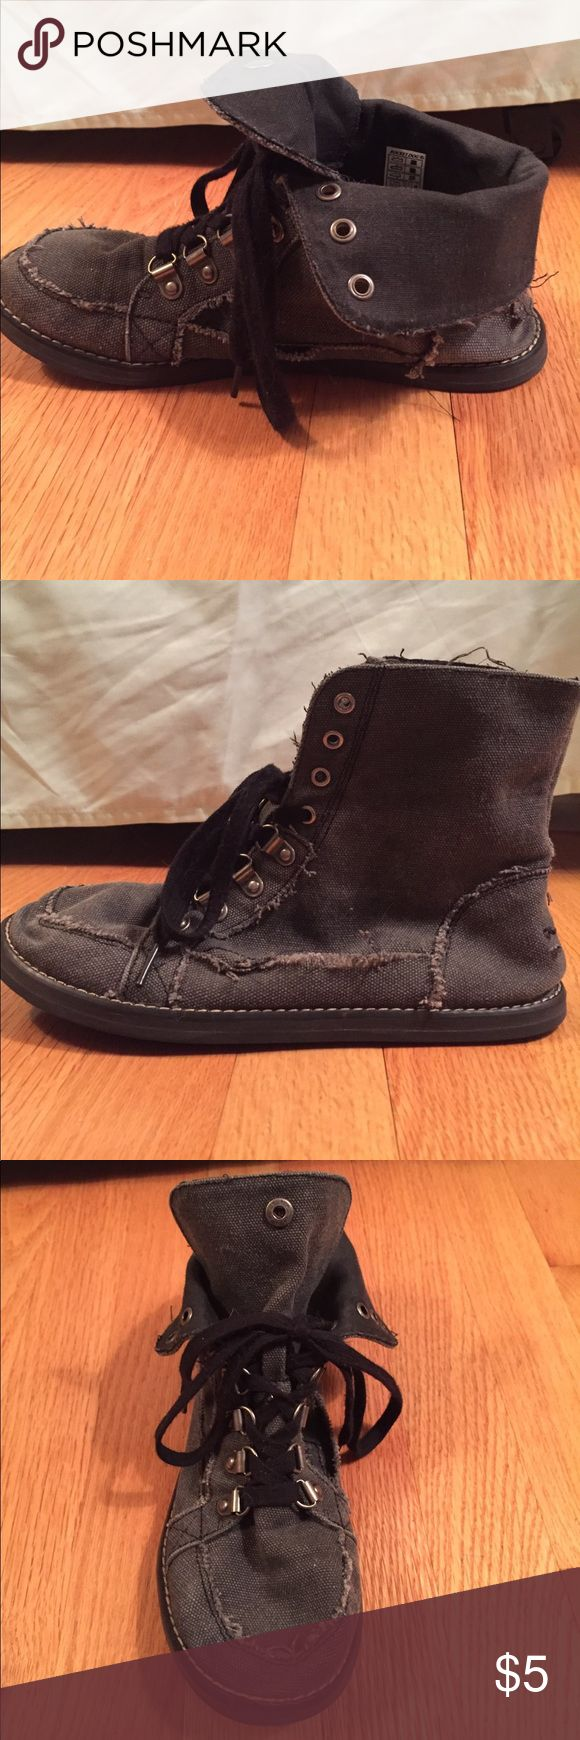 Rocket Dog sneaker booties Charcoal, lace up booties; they fold down and snap on the front or you can keep them up; fairly worn; some tearing, but repaired with Shoe Goo Rocket Dog Shoes Ankle Boots & Booties